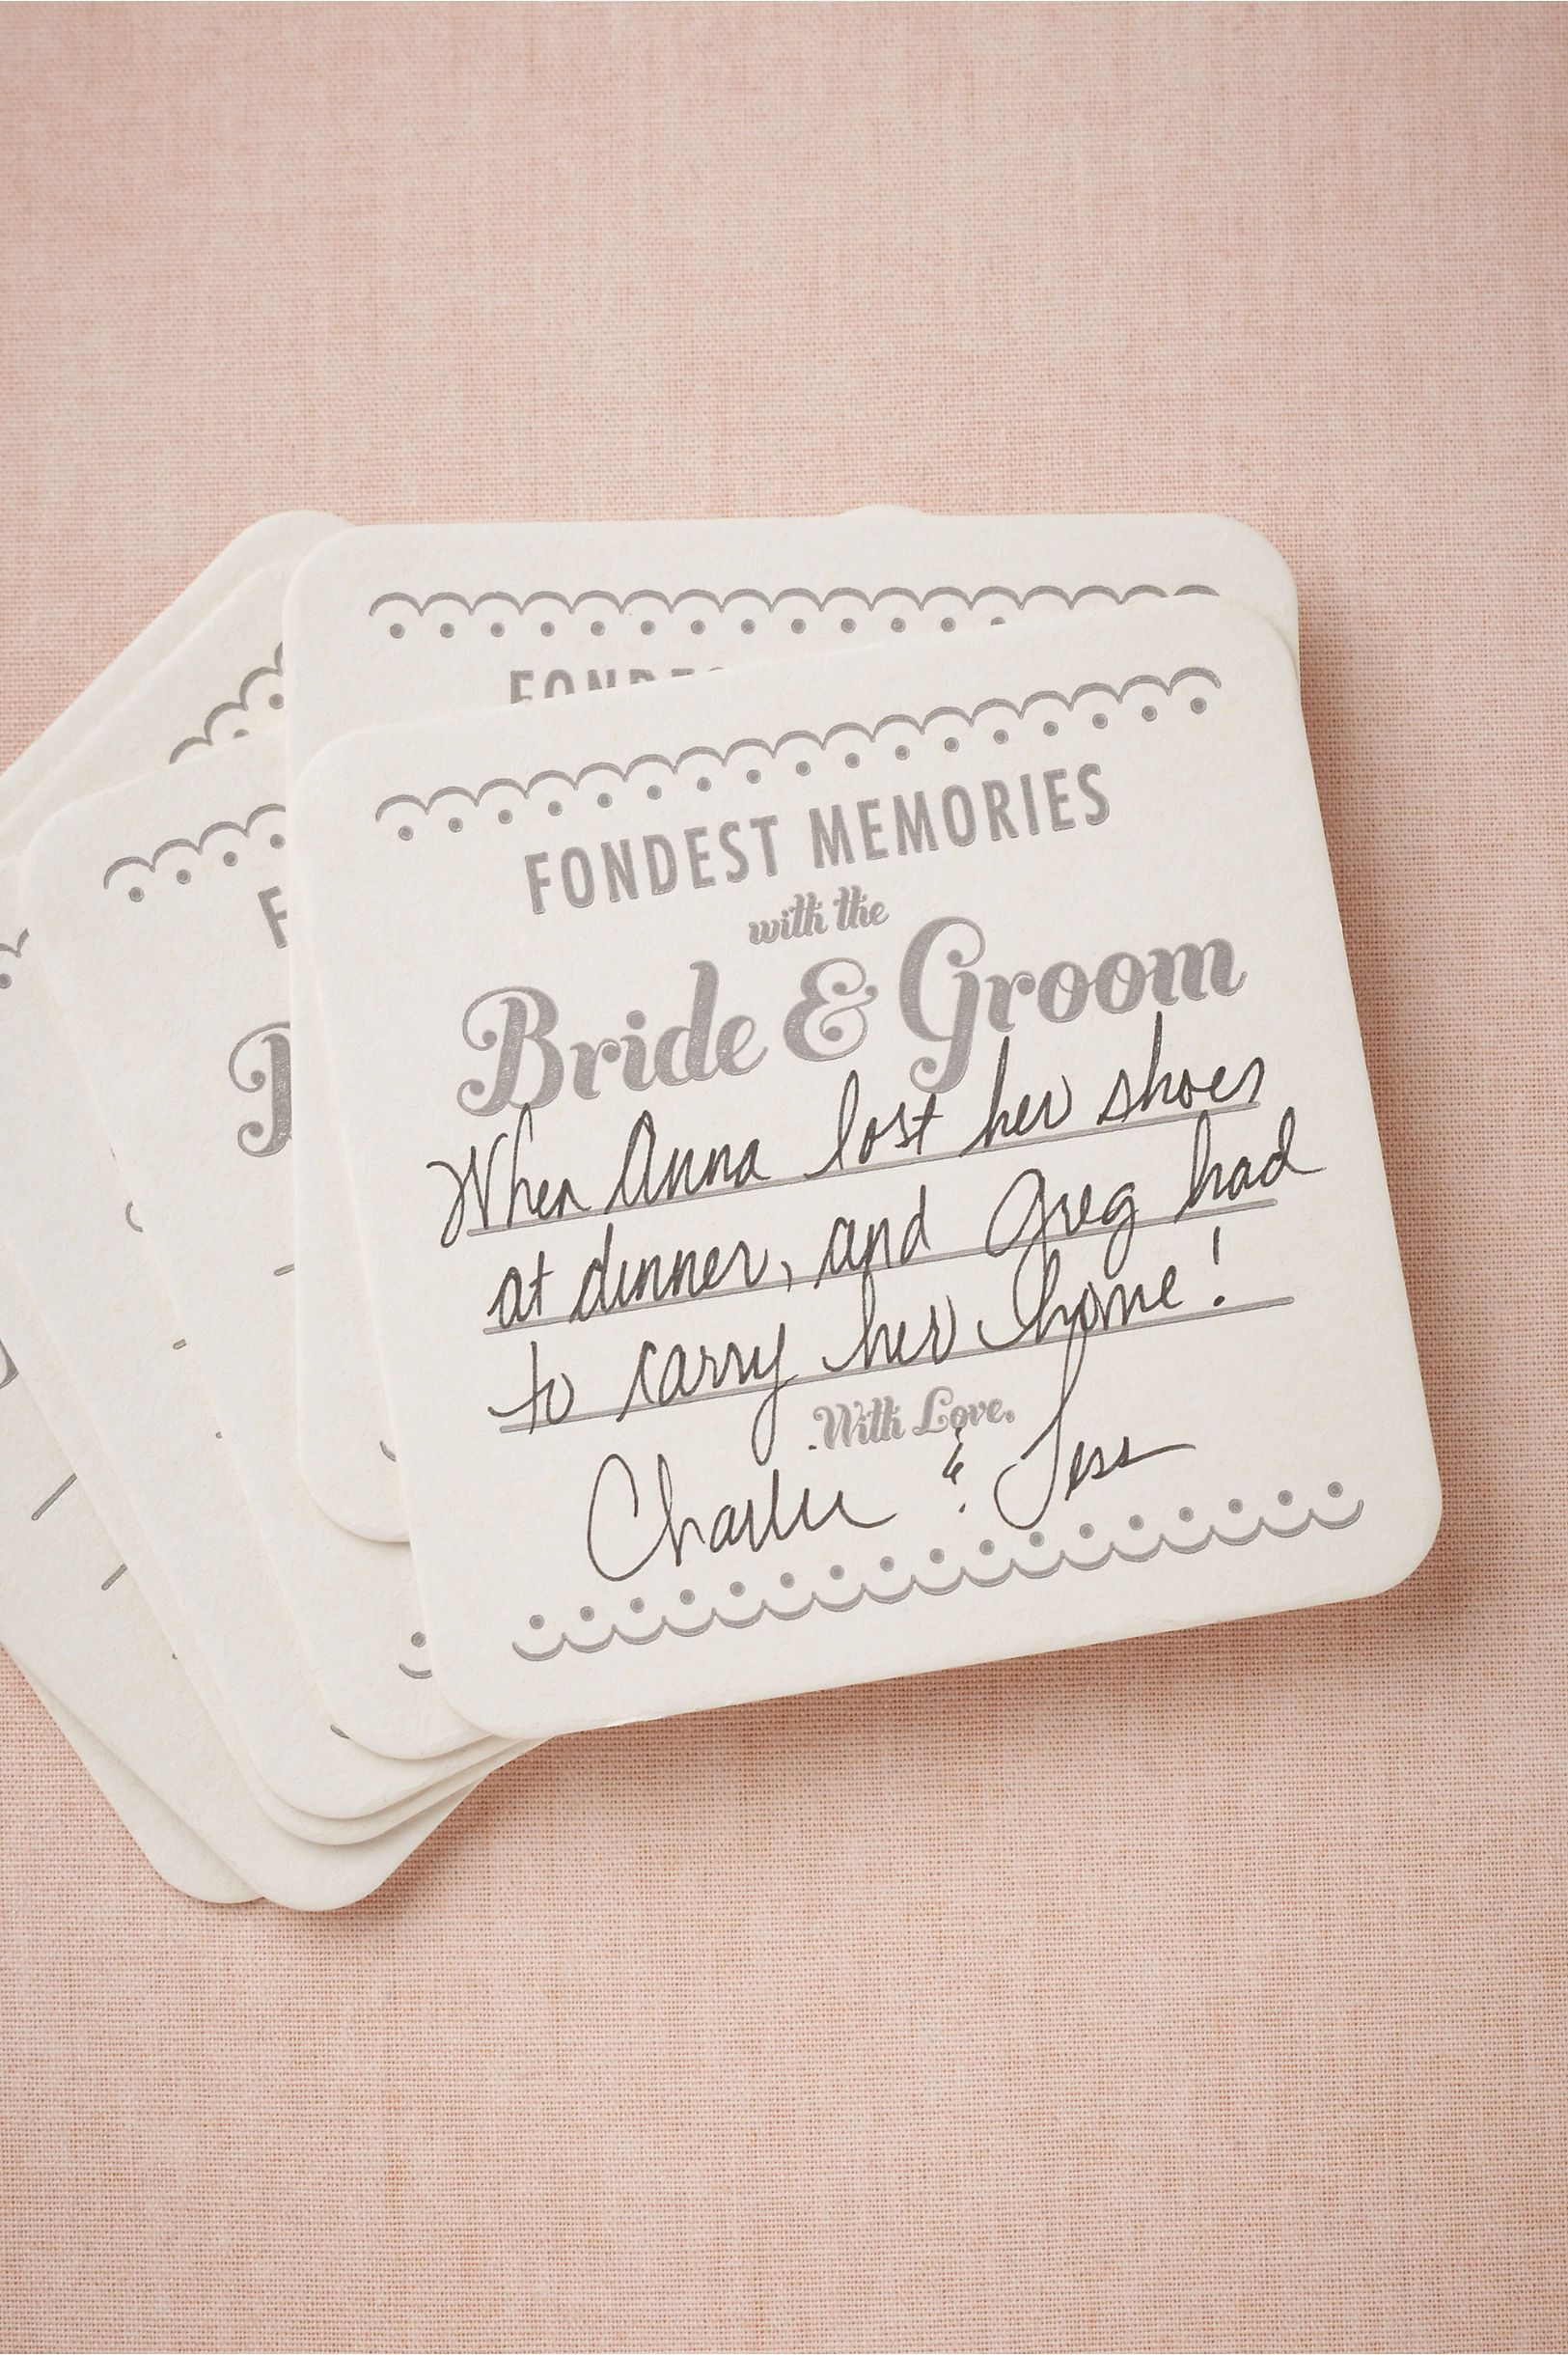 Have guests write their fondest memories of you as a couple on ...